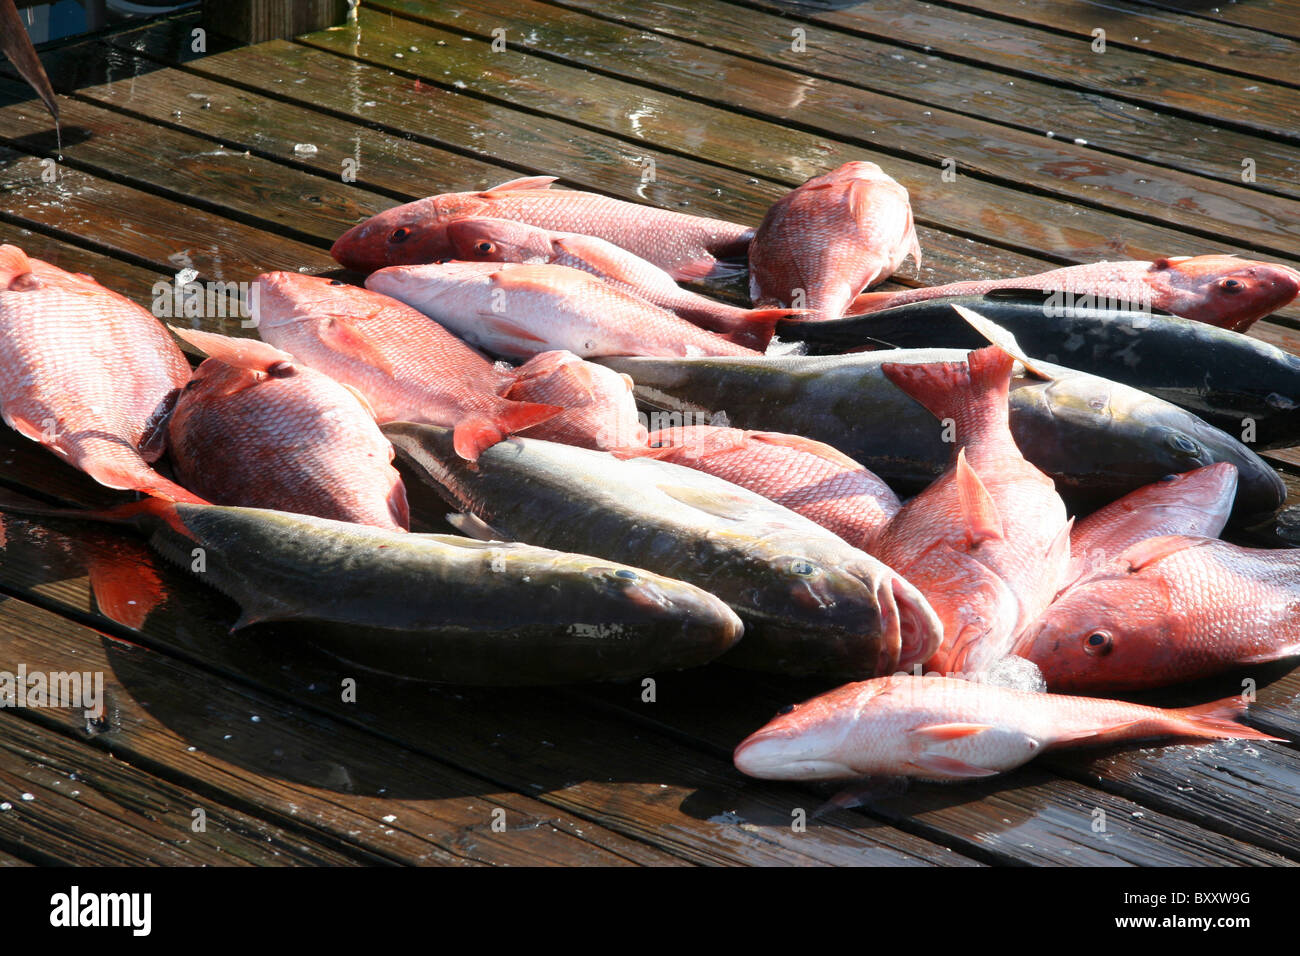 Freashly caught red snapper and other fish lay on the dock. Stock Photo